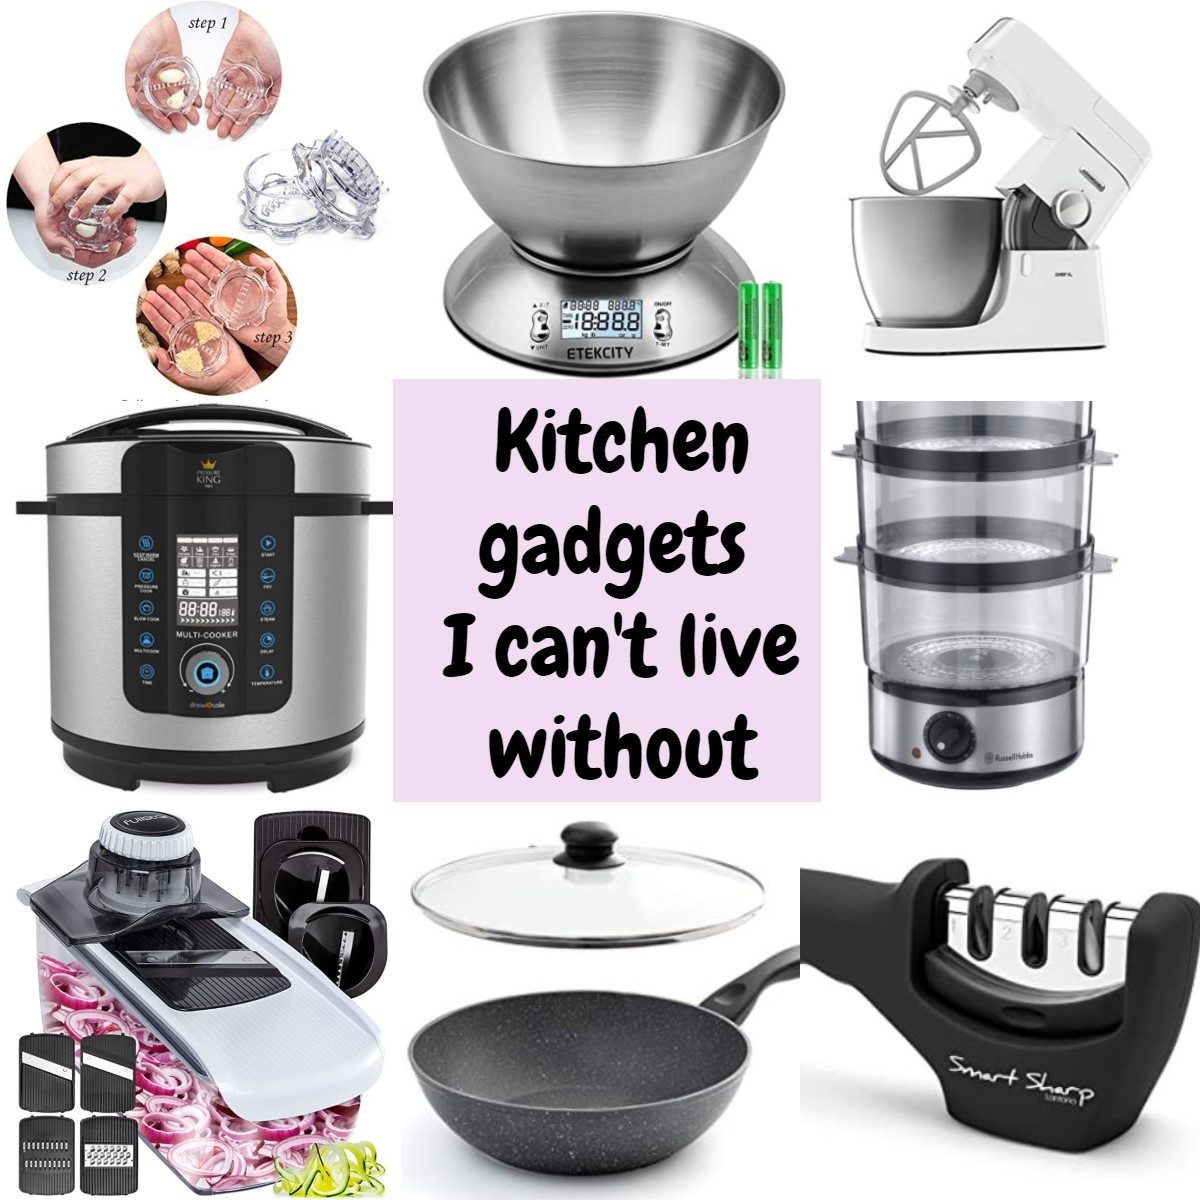 Kitchen gadgets I can't live without.